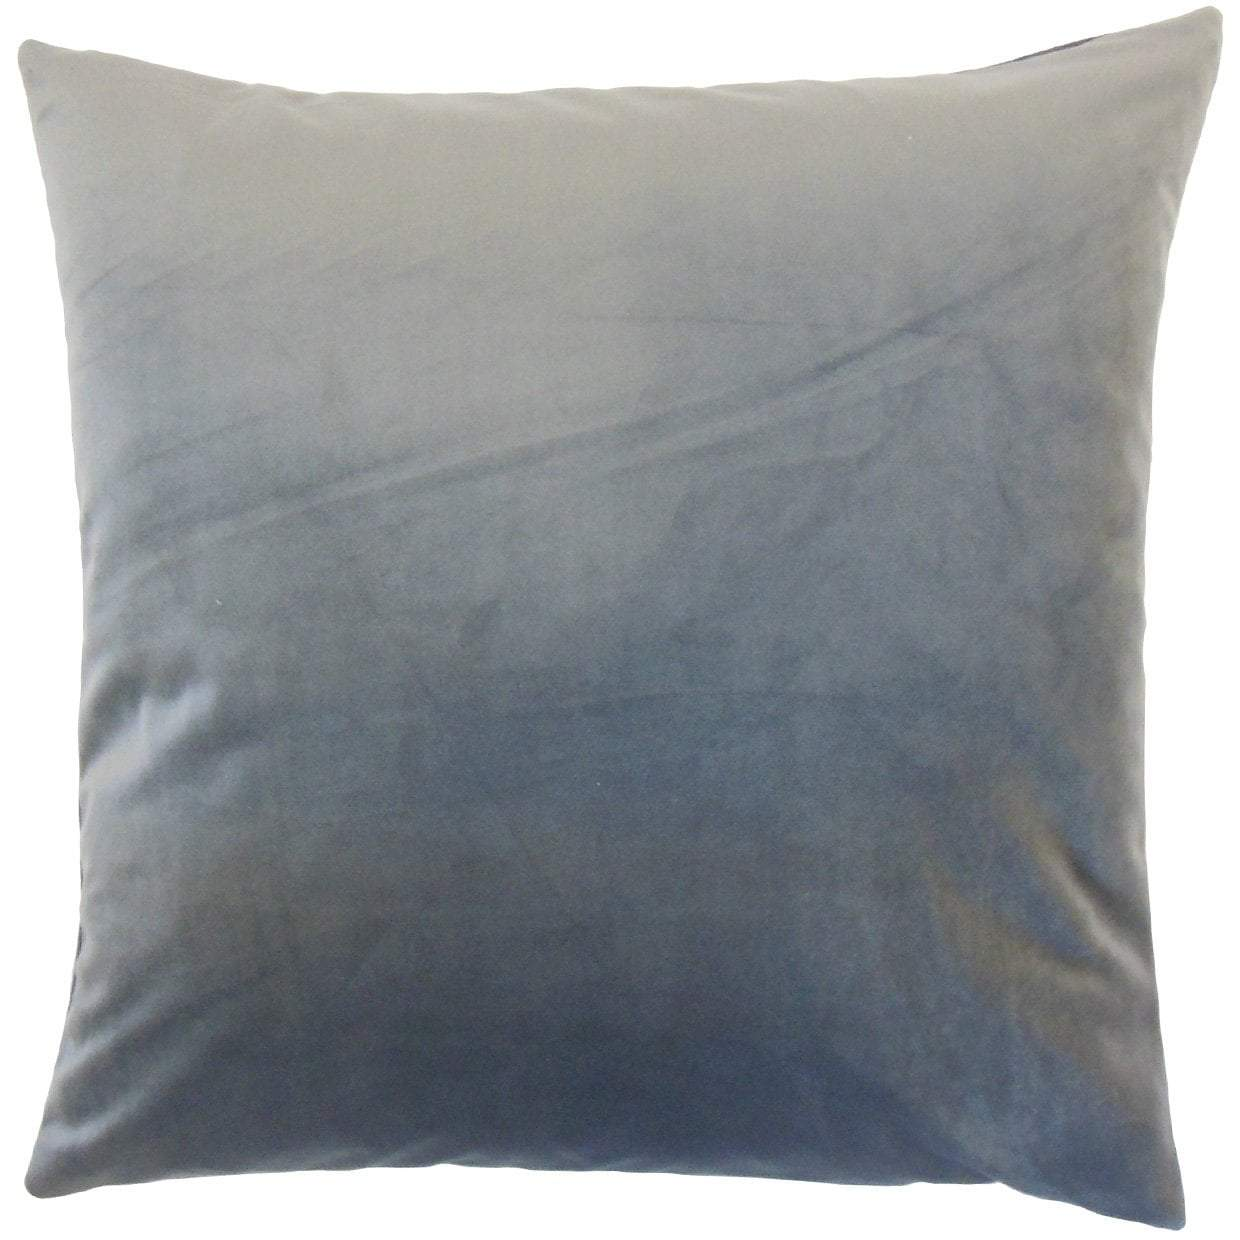 Gray Velvet Solid Luxe Throw Pillow Cover